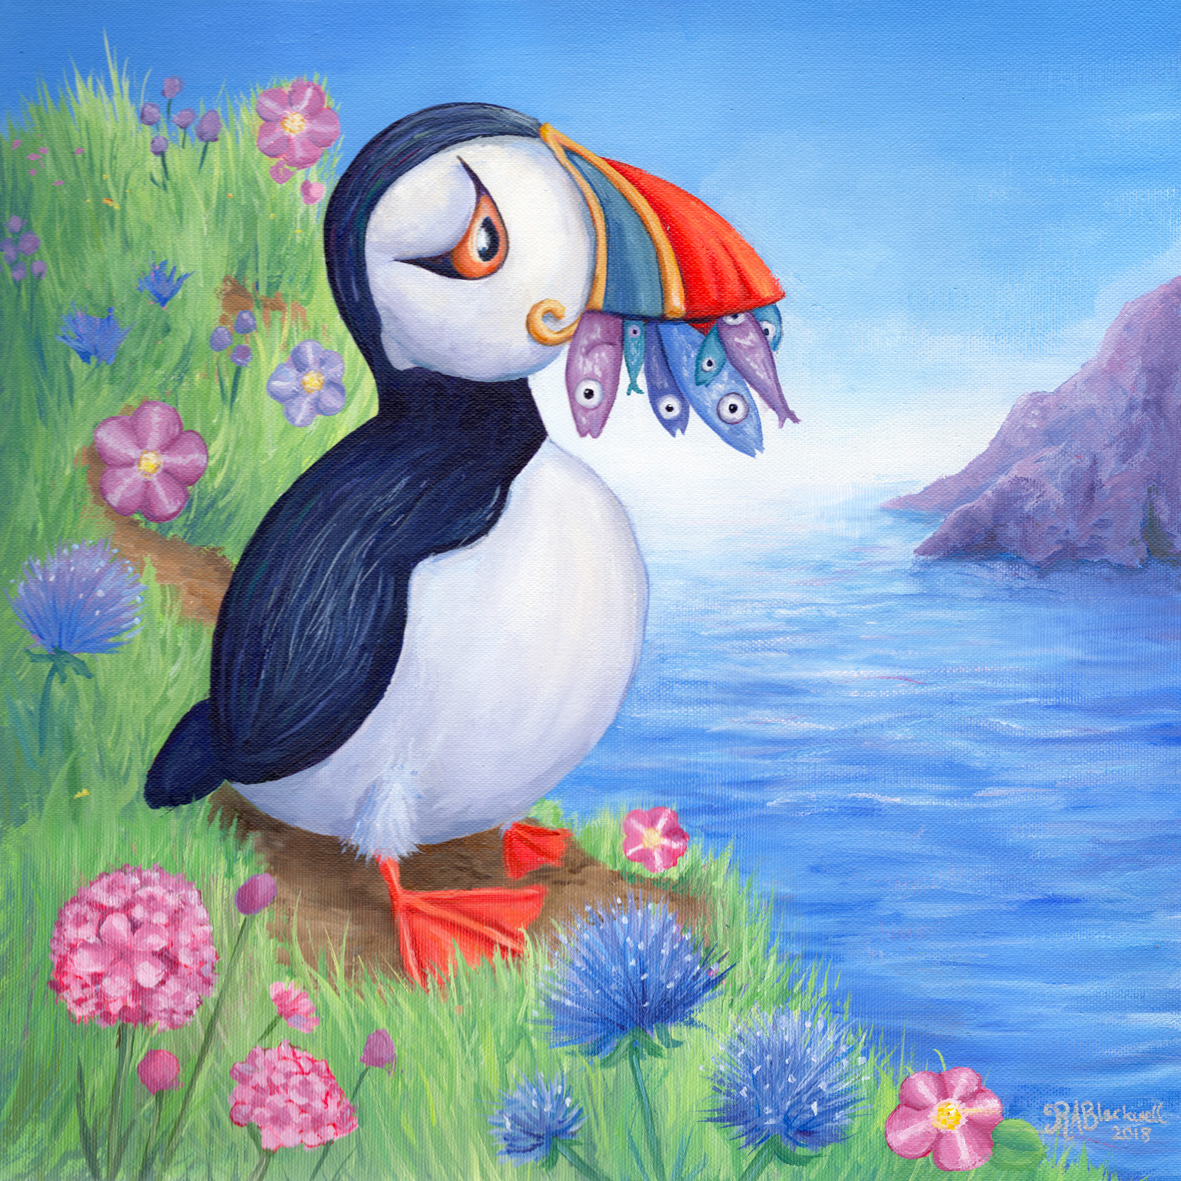 A Puffin's Picnic